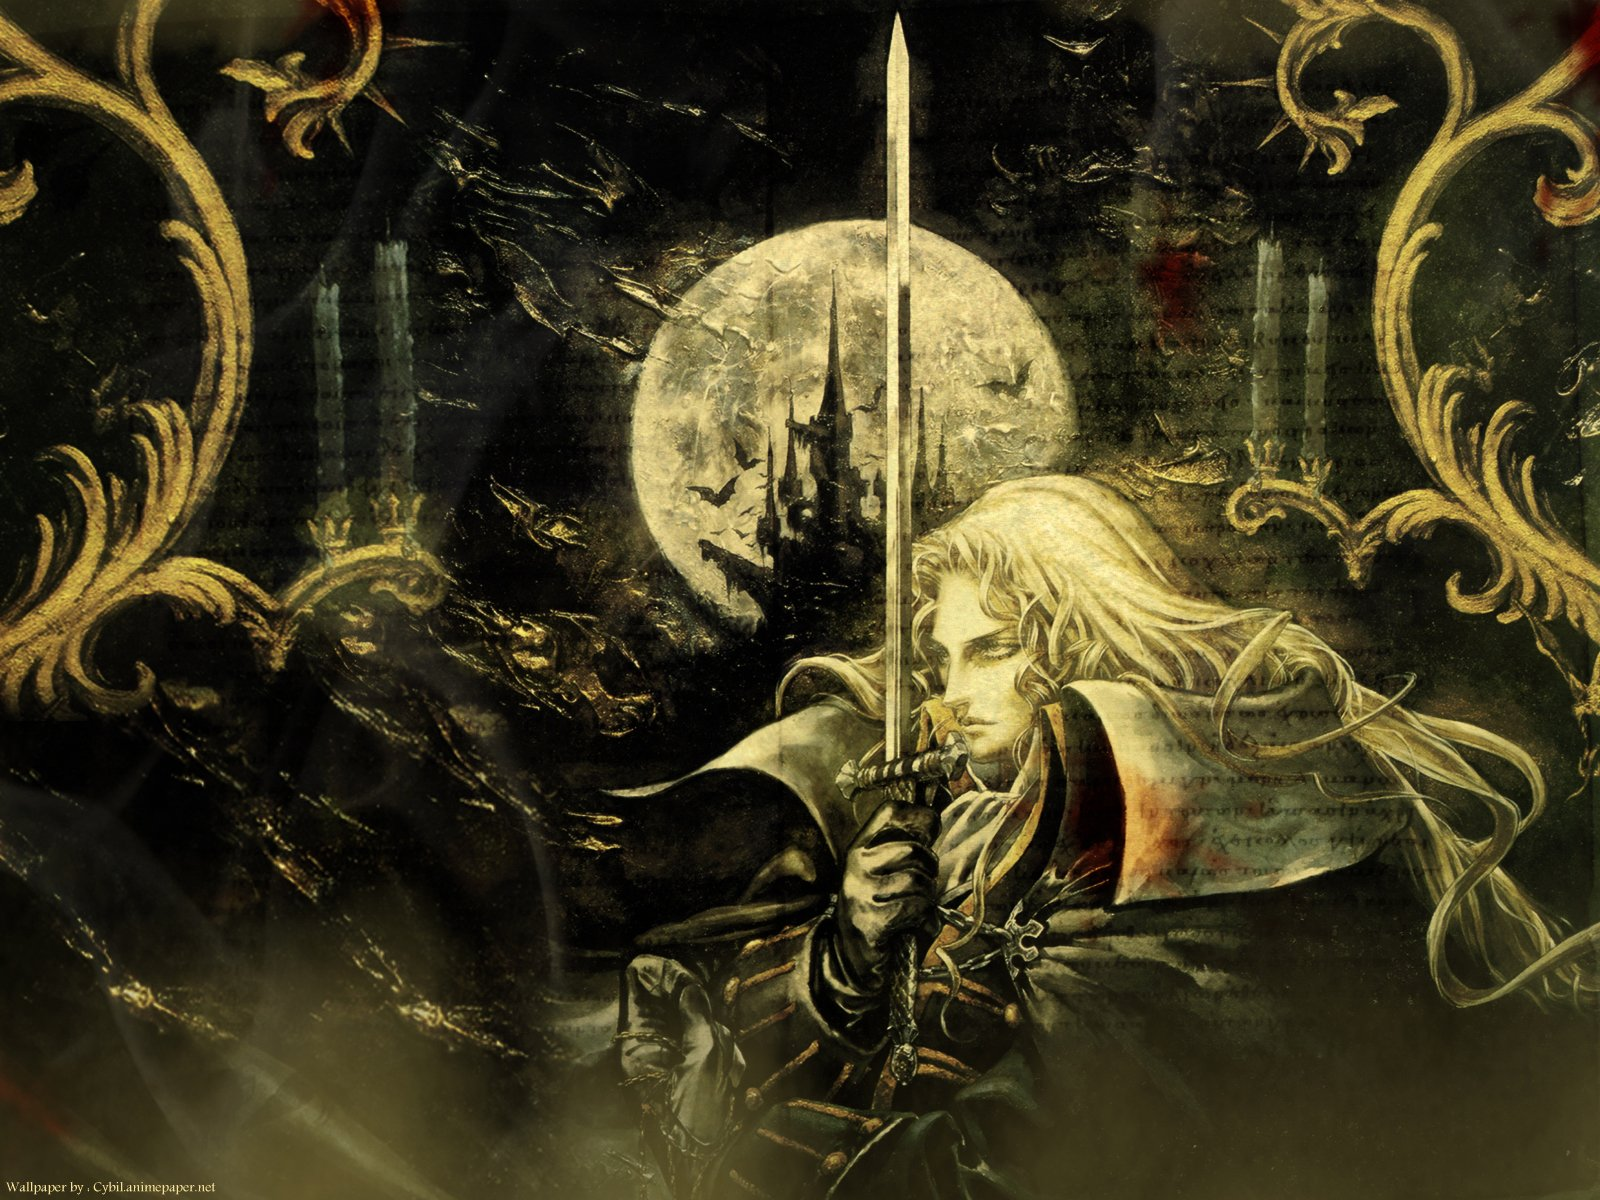 81 castlevania hd wallpapers | background images - wallpaper abyss